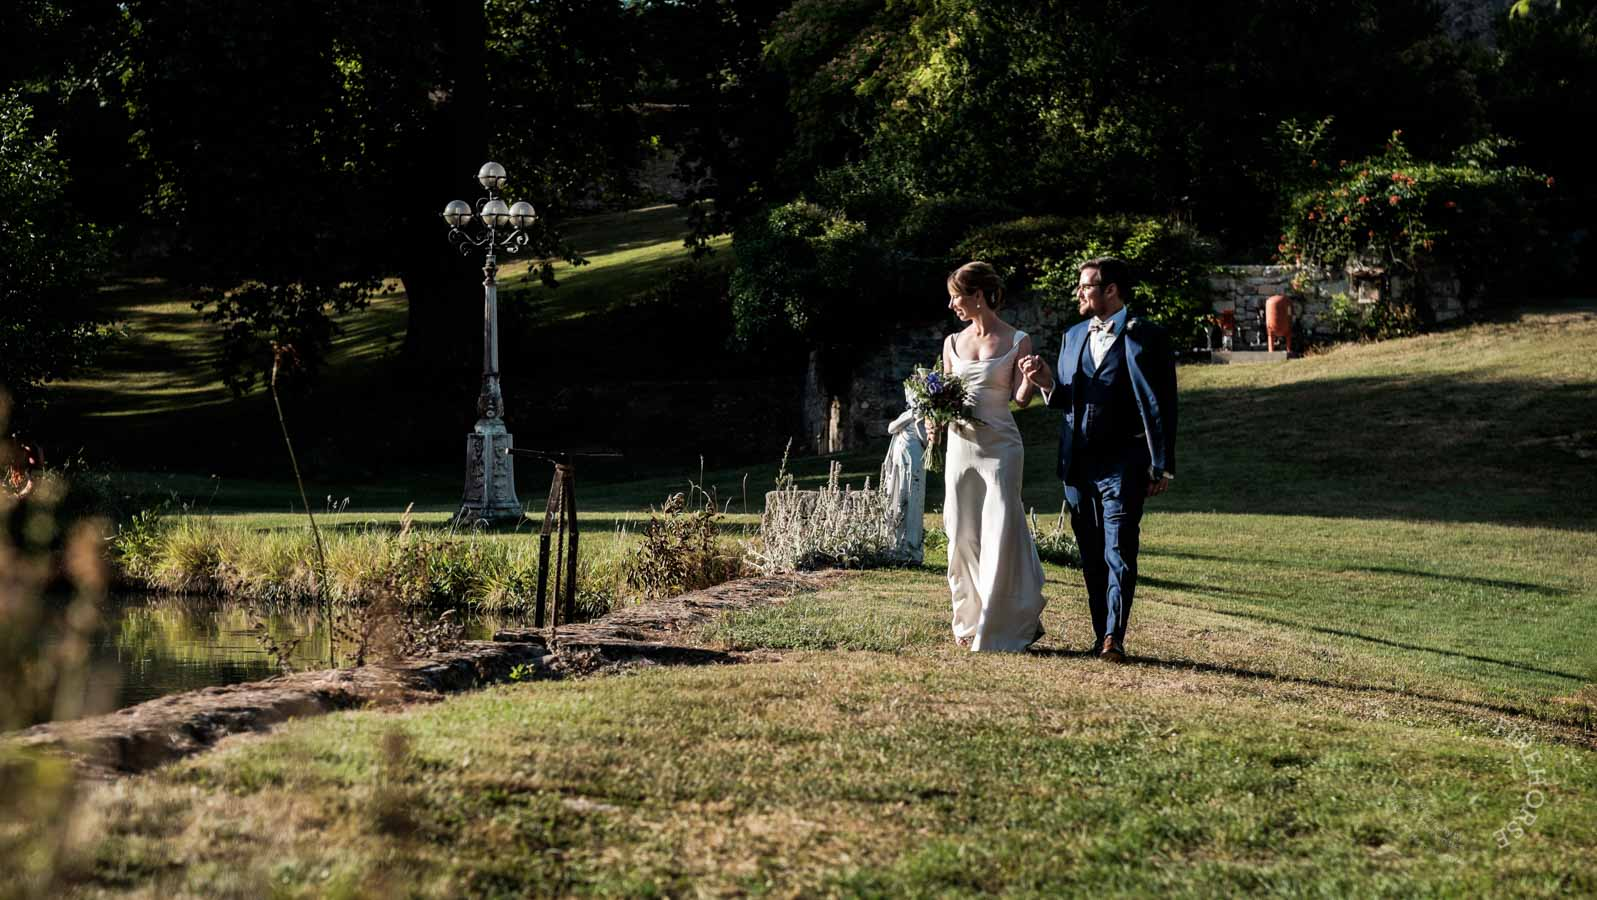 Lot-et-Garonne-Wedding-Photography-289